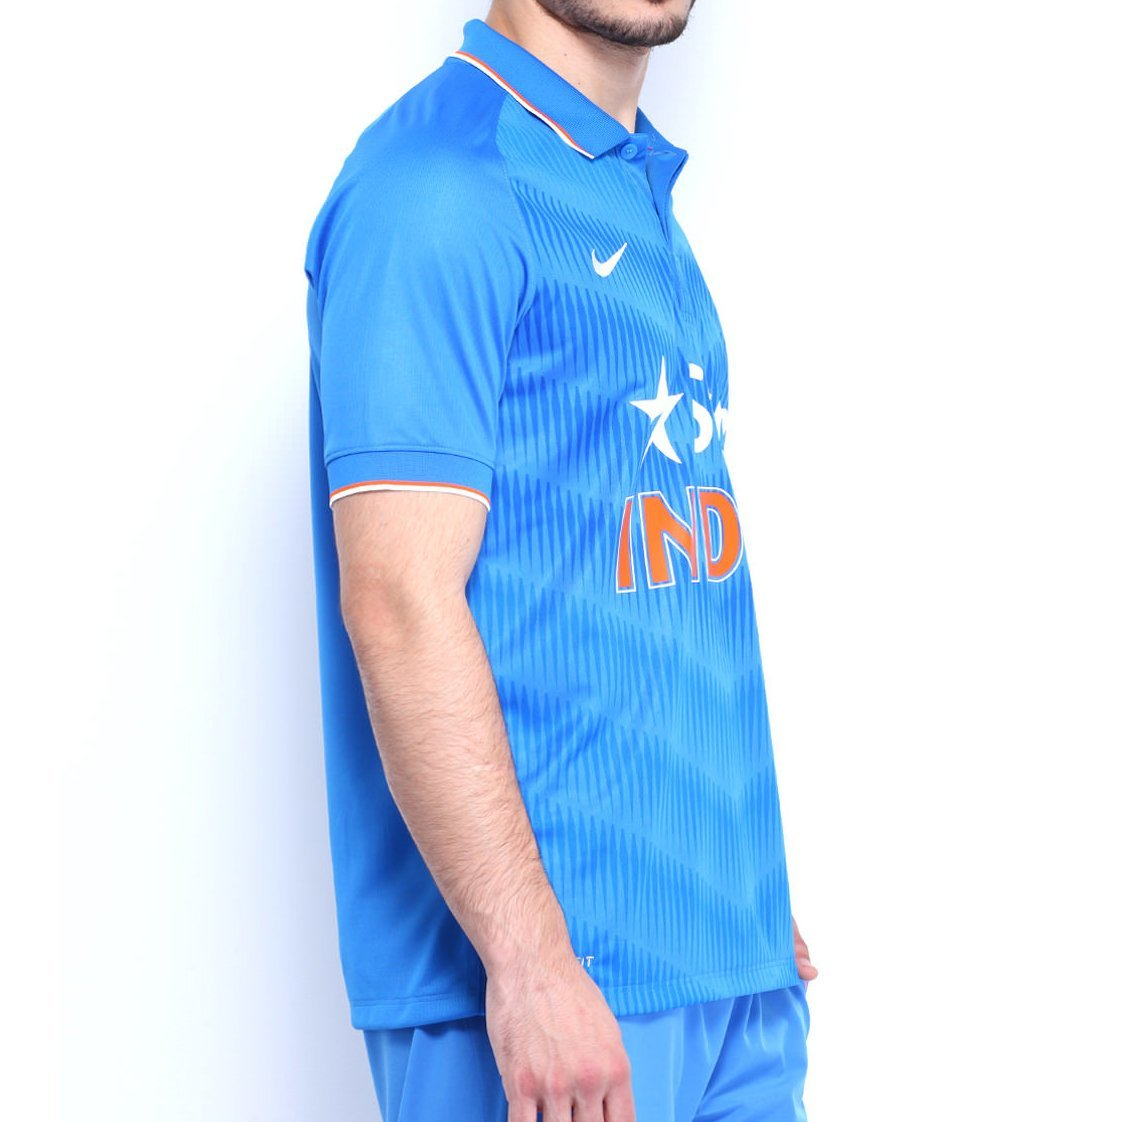 Nike mexico jersey 2017 one pen one page - Buy Nike 667870 481 India T Shirt Blue Xx Large Online At Low Prices In India Amazon In